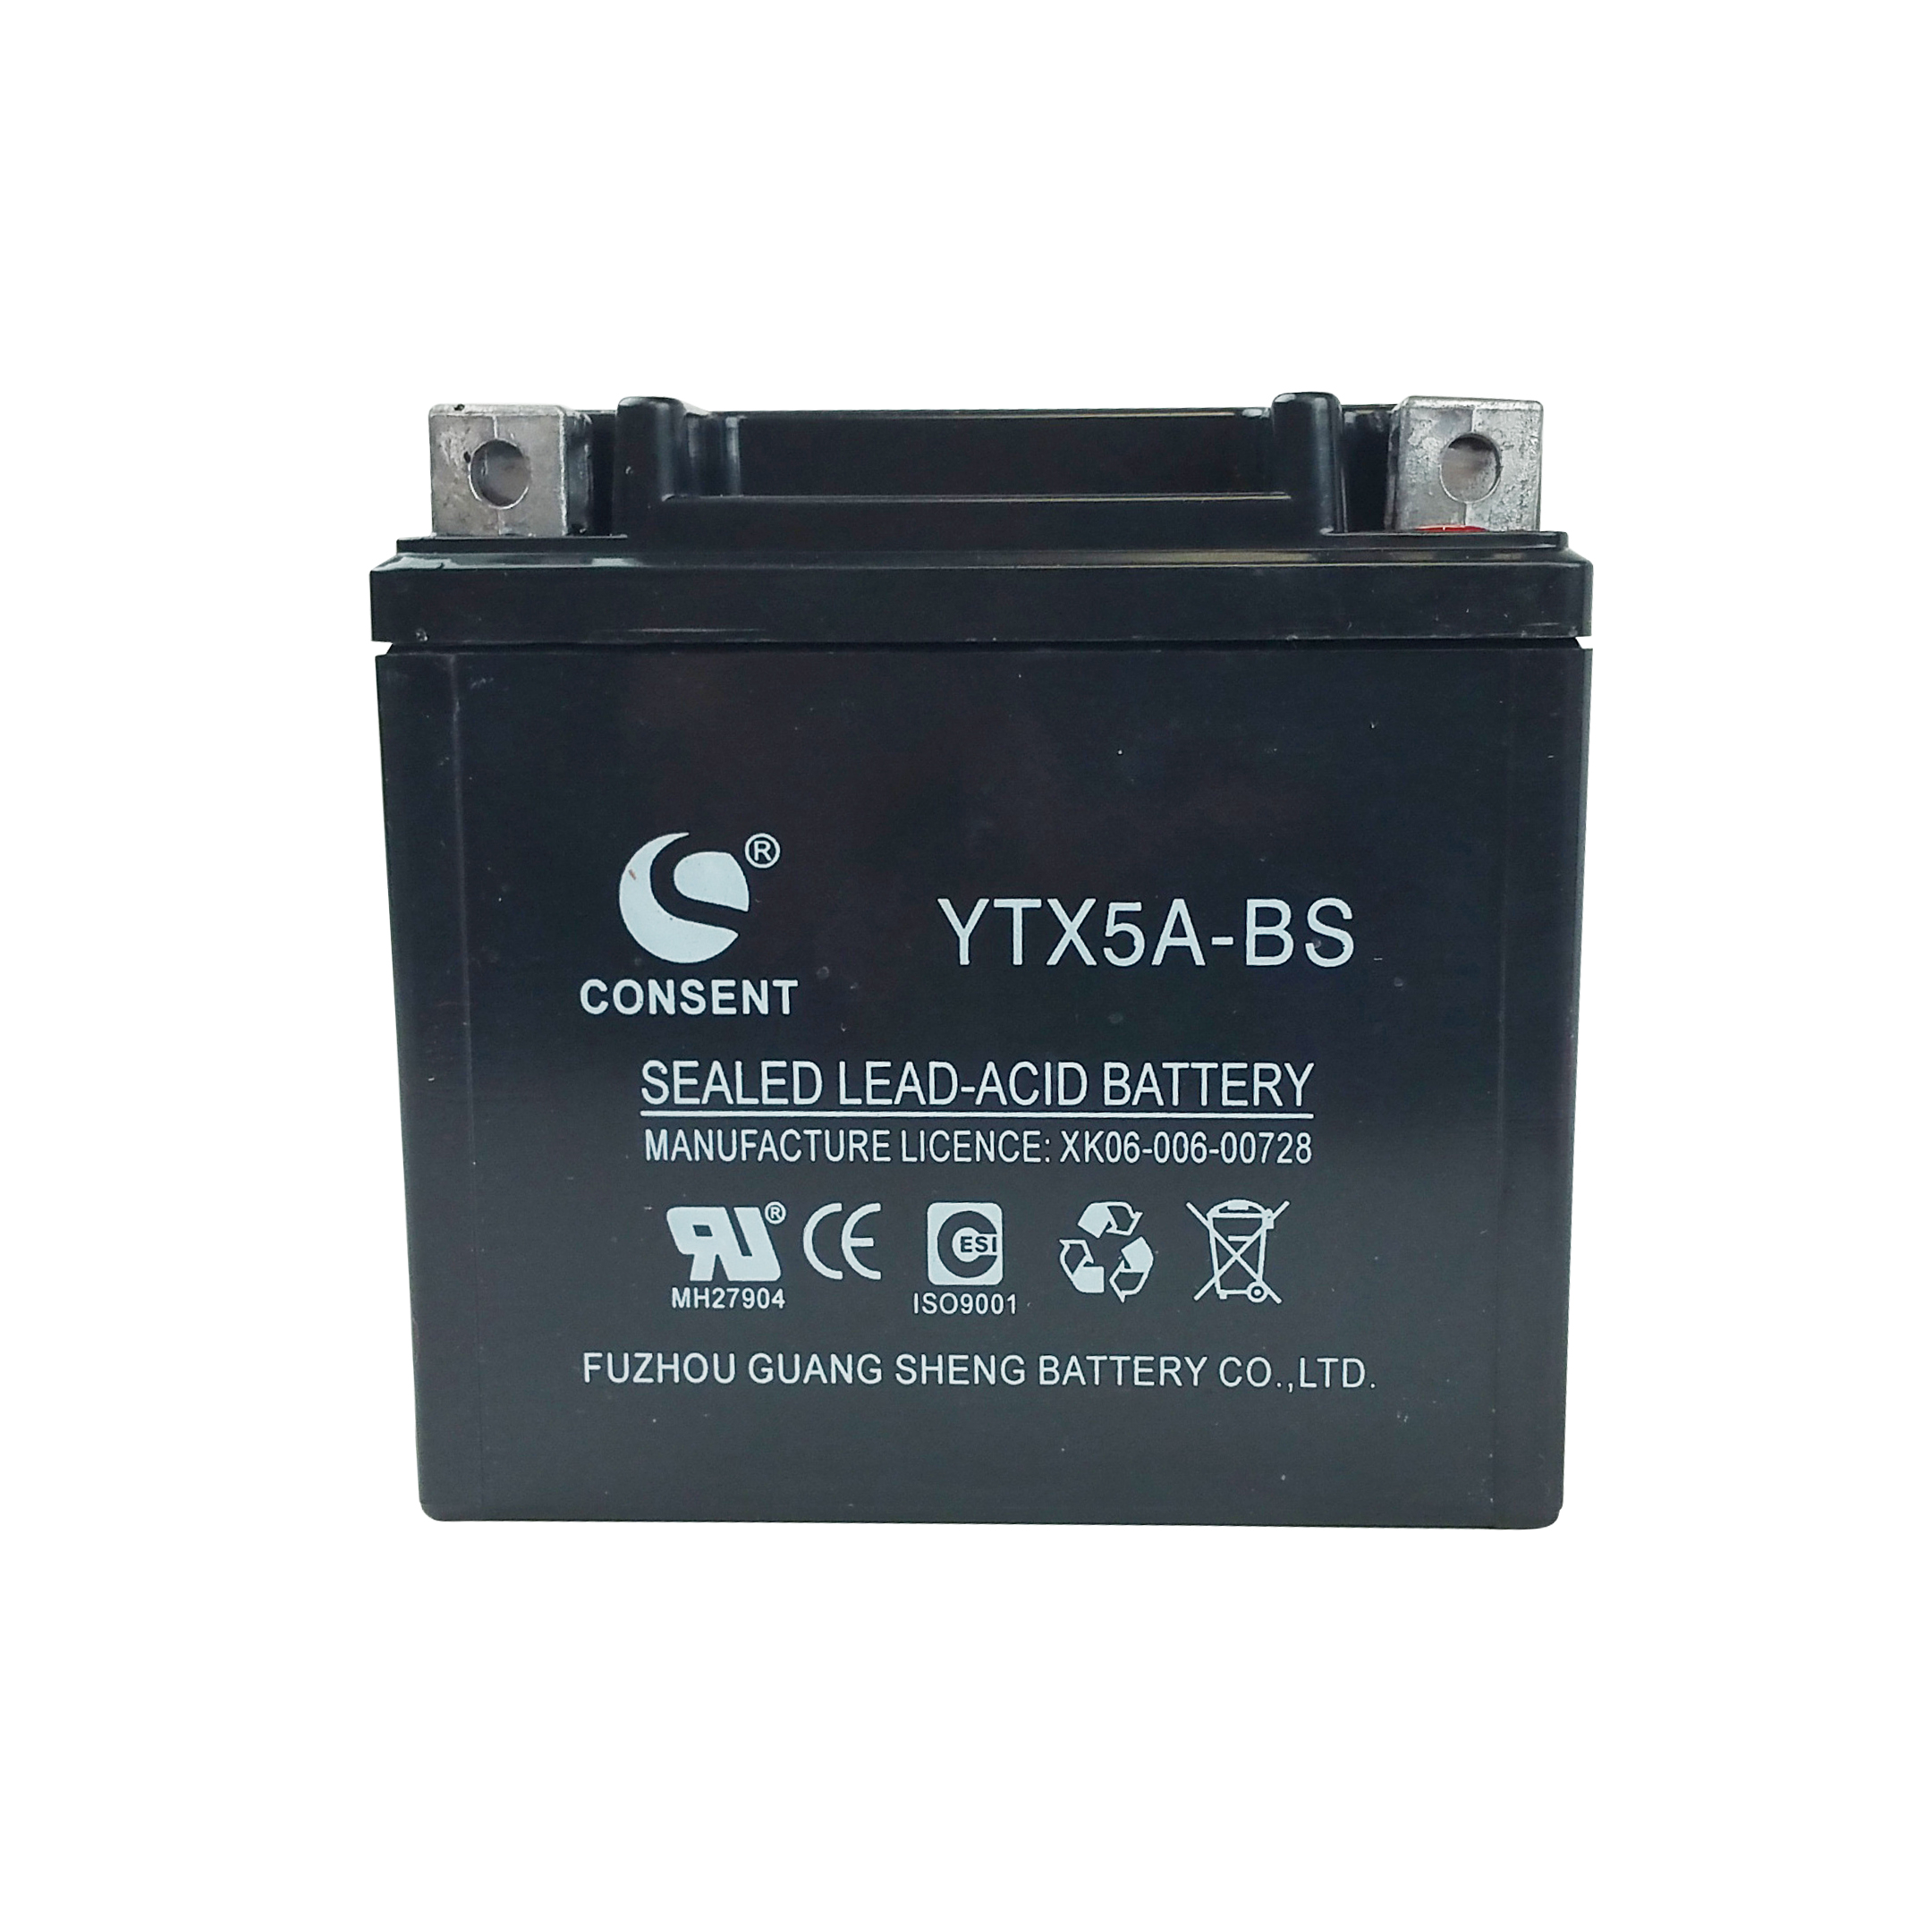 12V 5AH (QIXILANG) SEALED BATTERY (L:112MM H:116MM W:69MM)